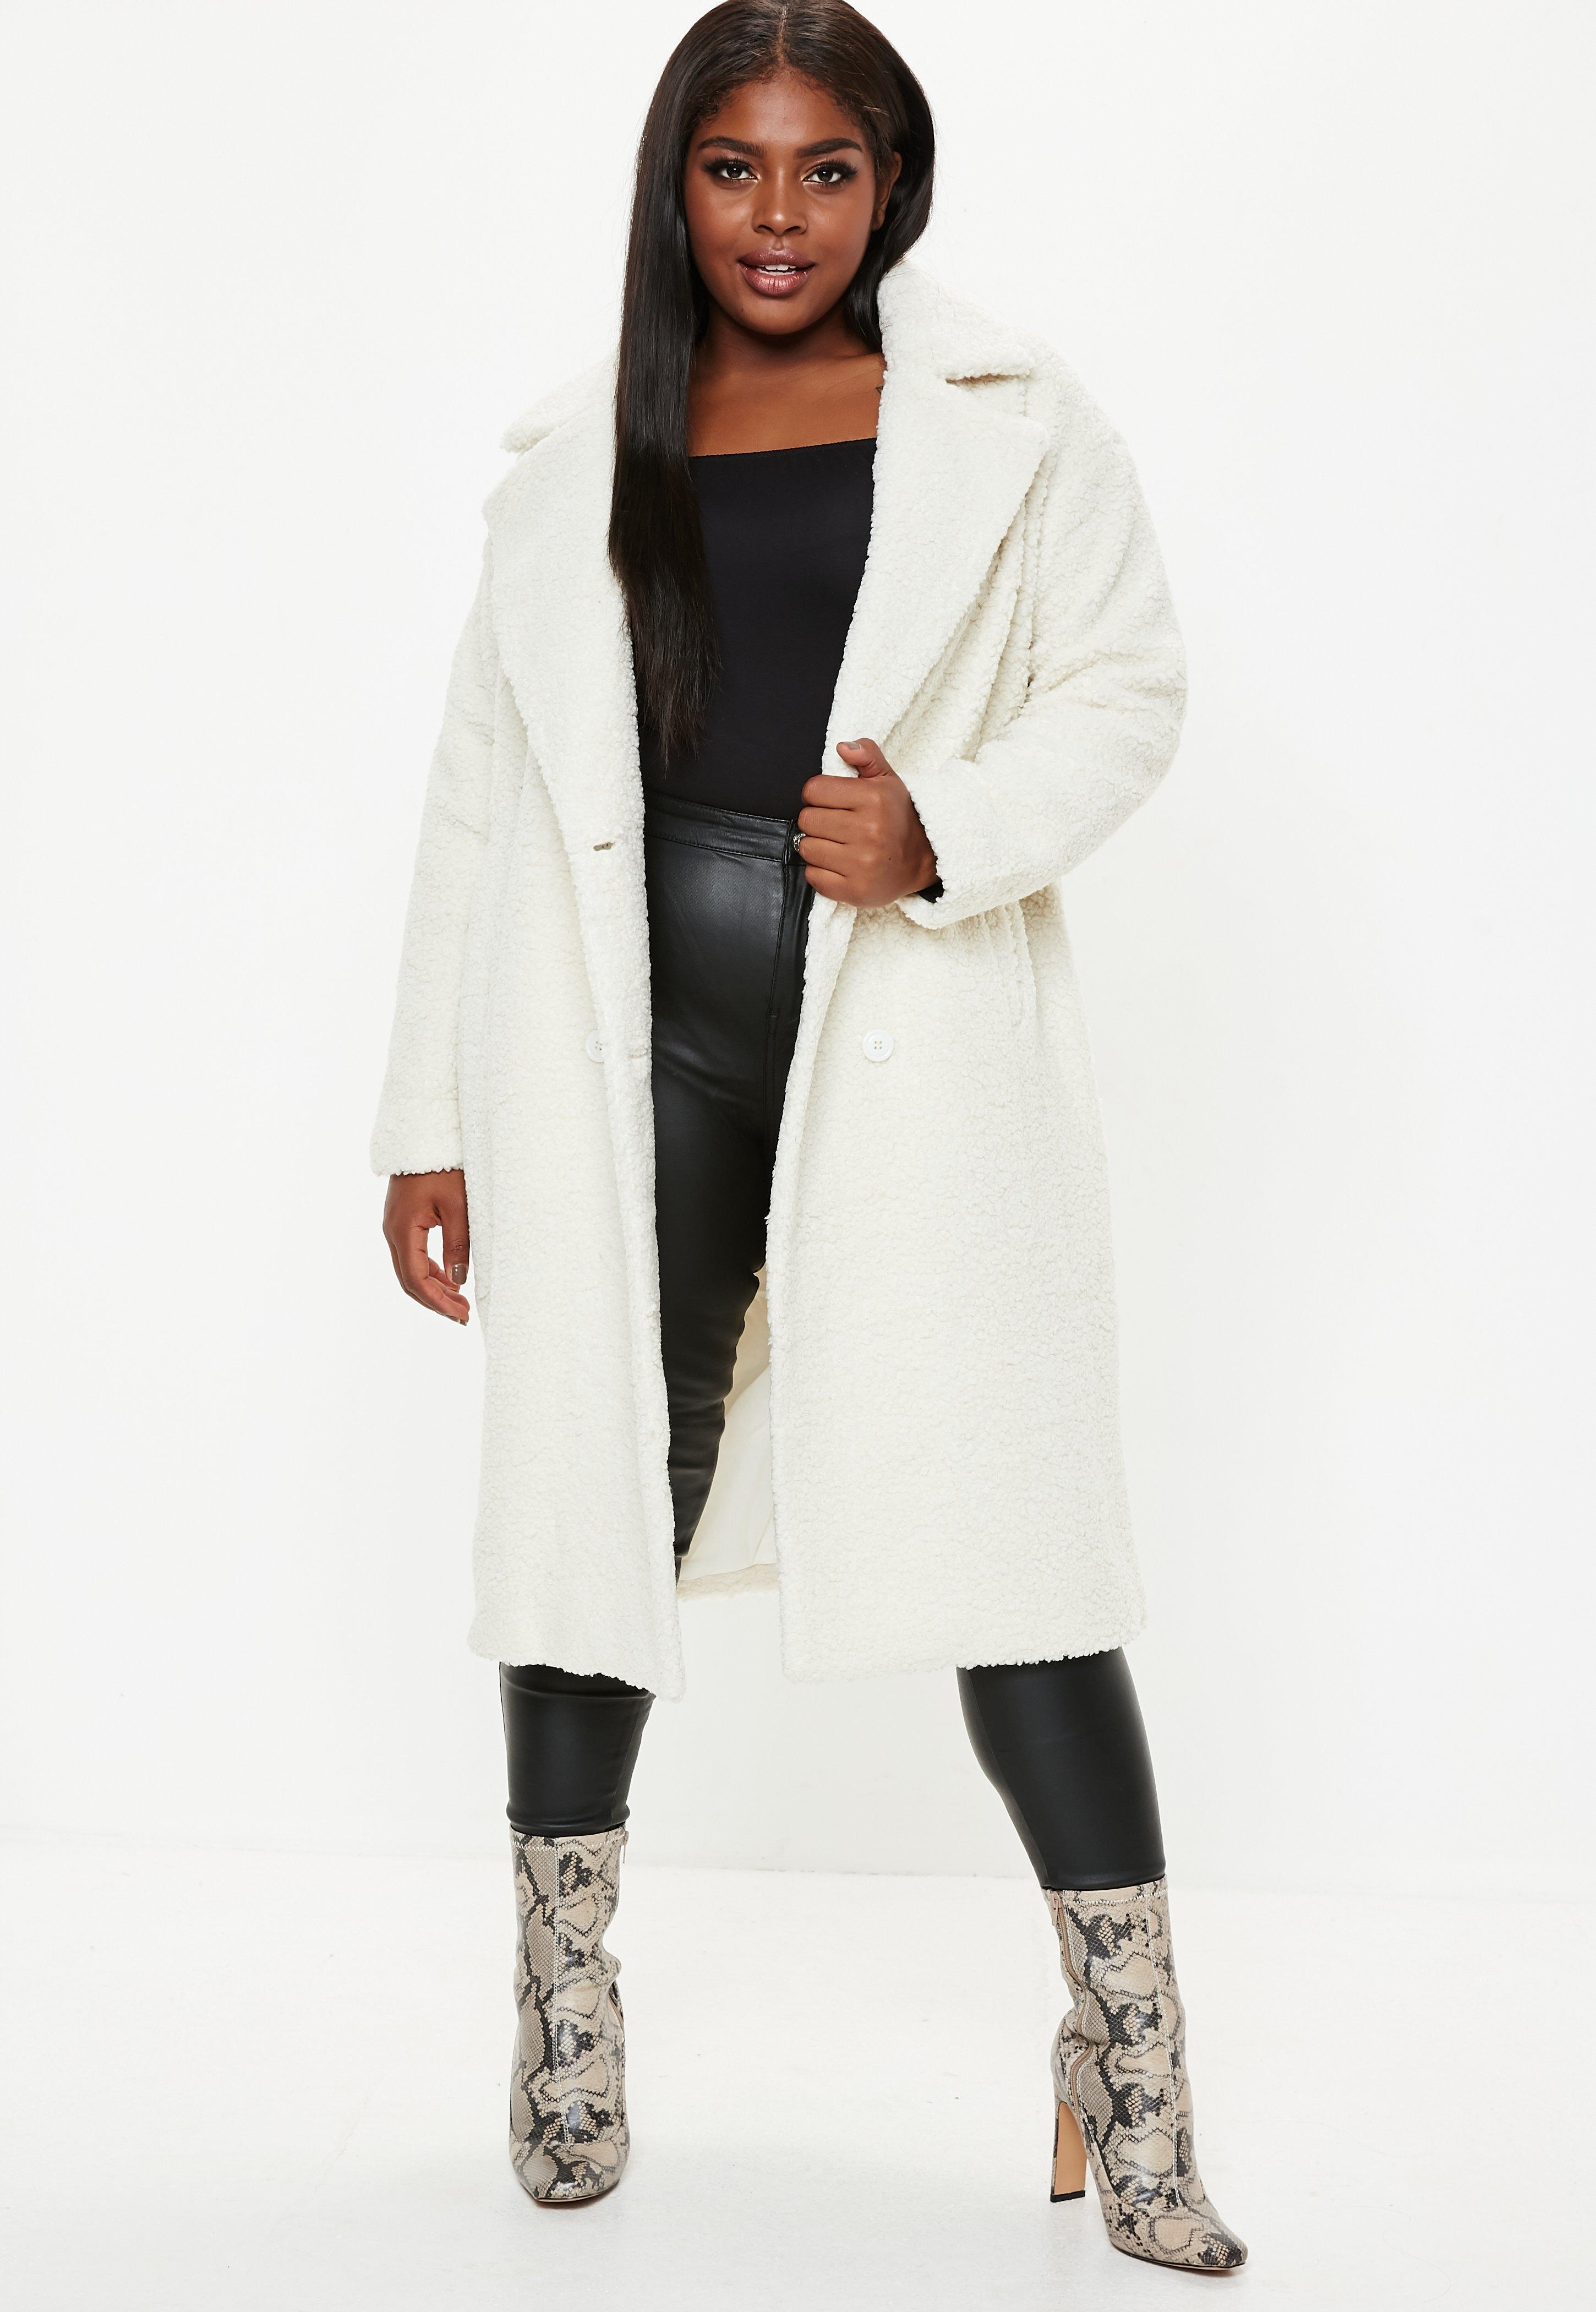 71f21479903c4 Lyst - Missguided Plus Size Cream Longline Teddy Coat in Natural